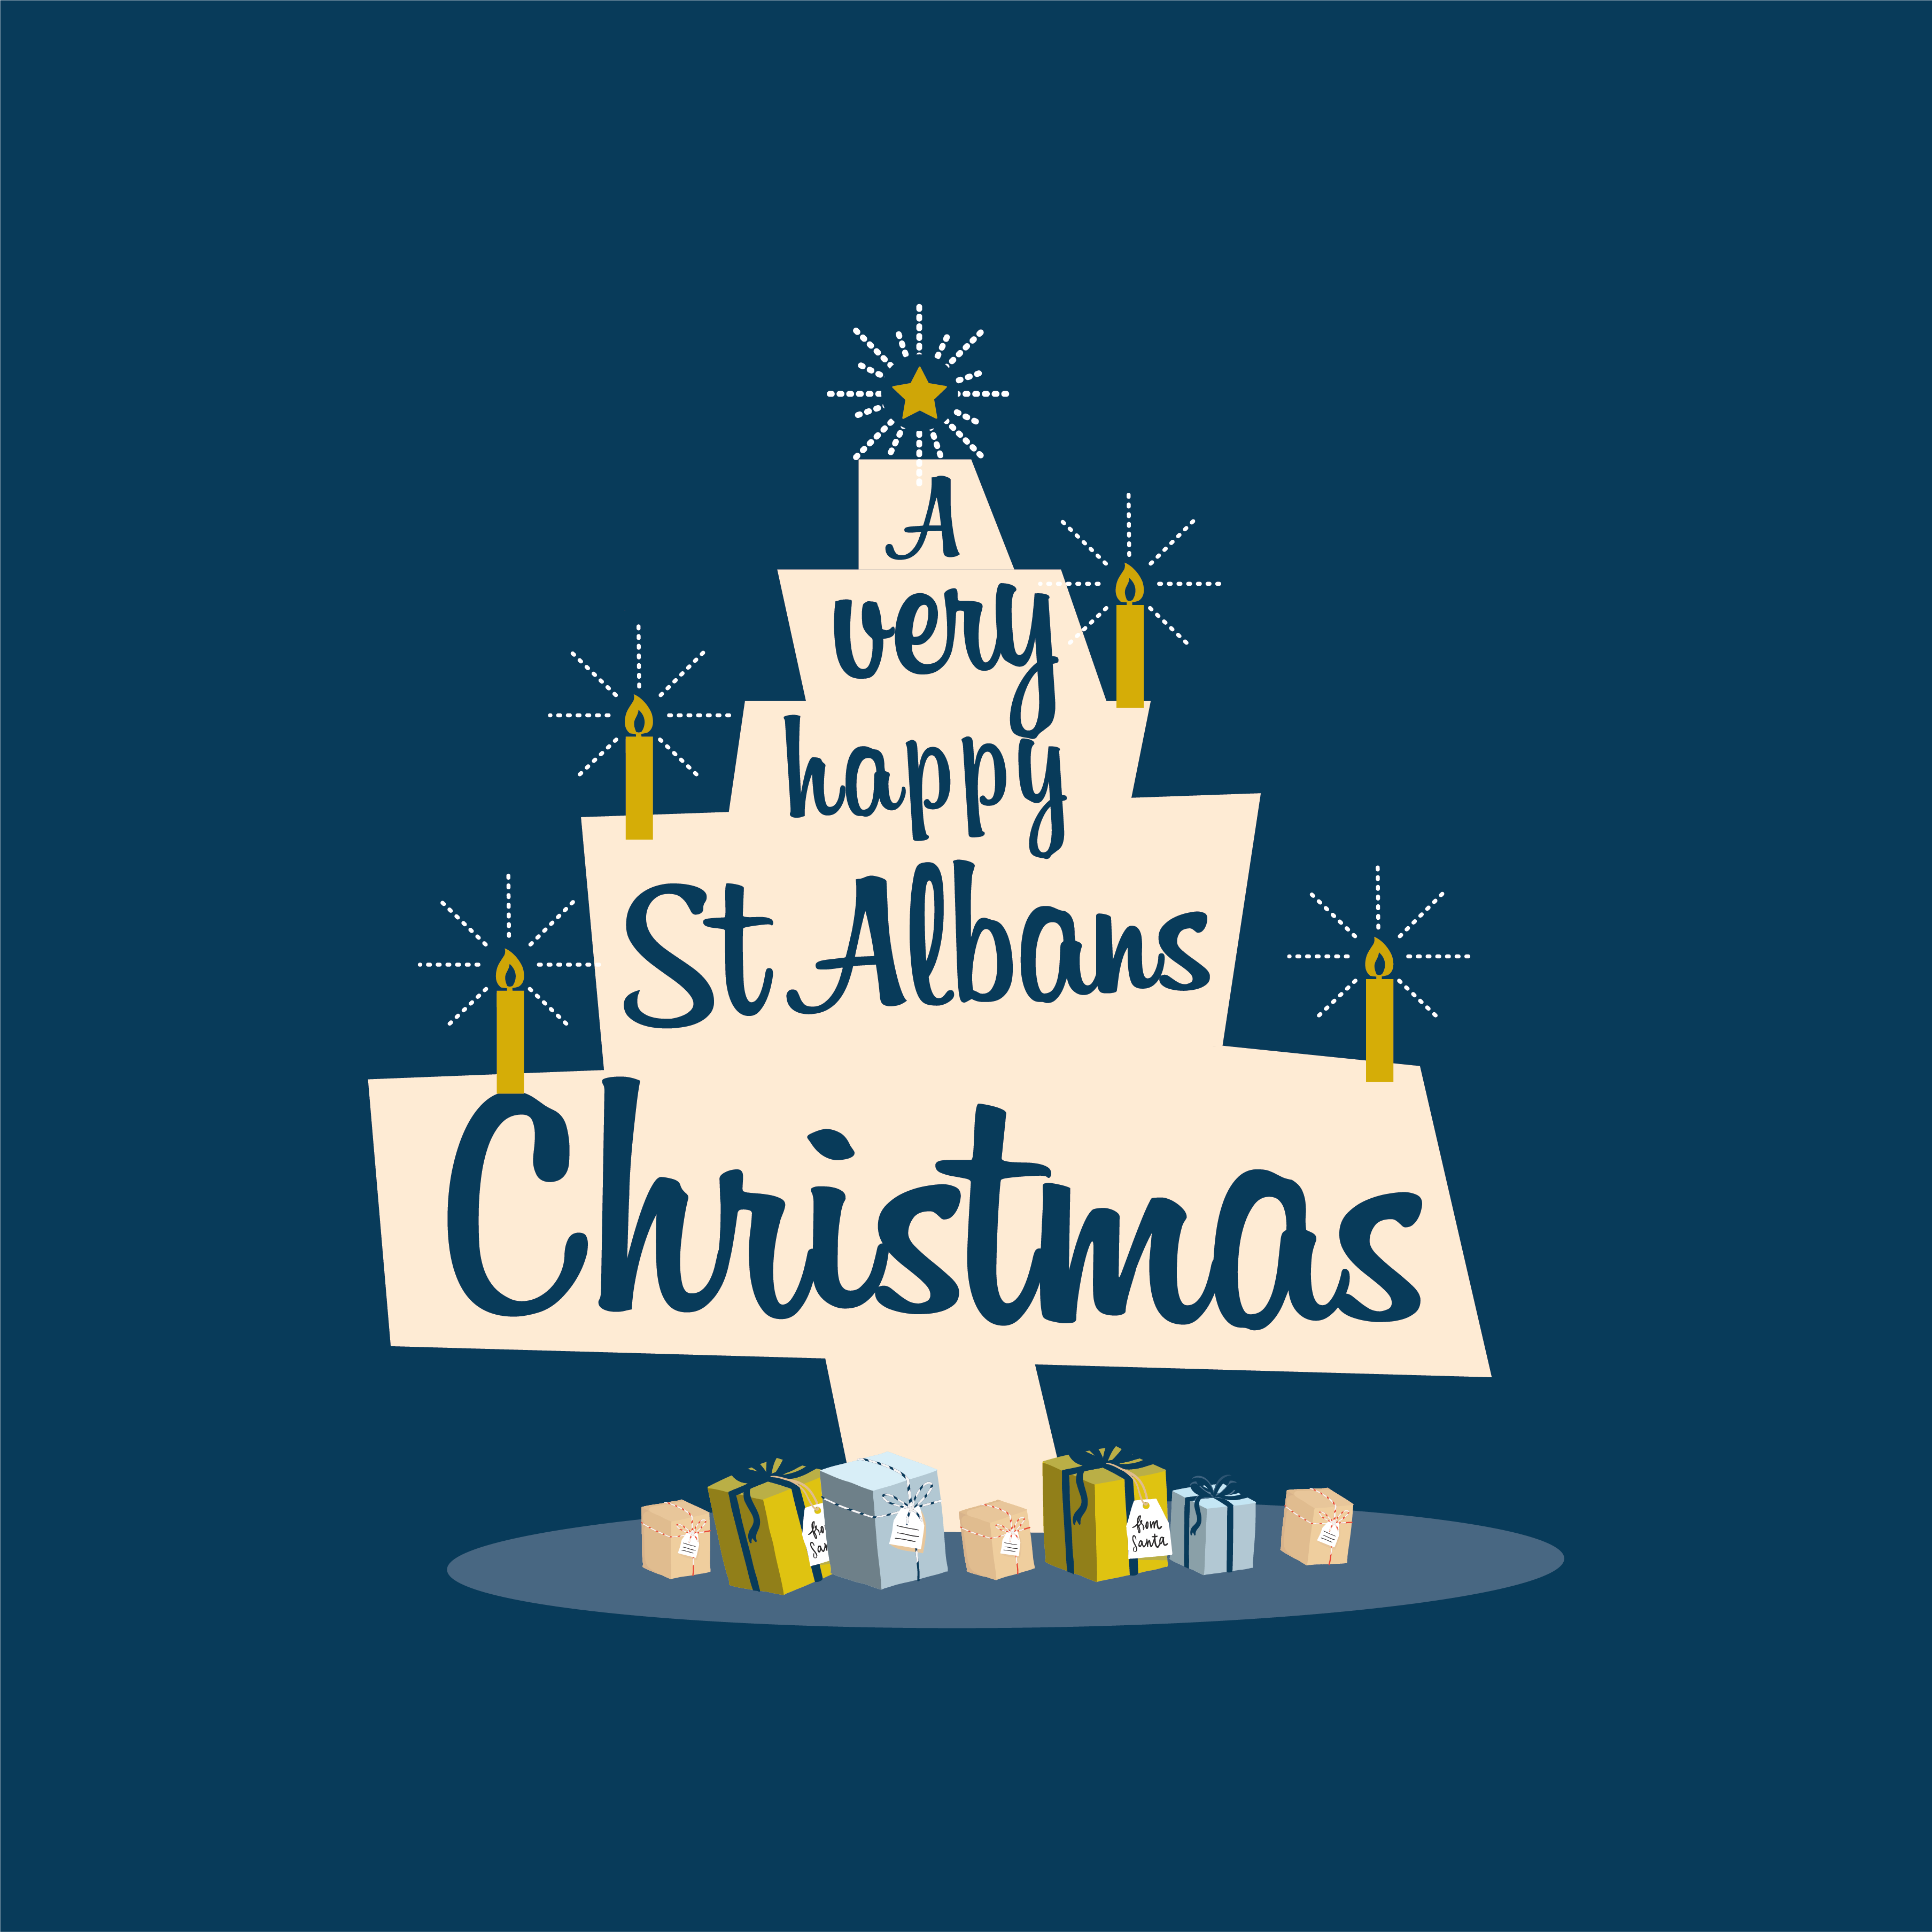 Christmas in St Albans